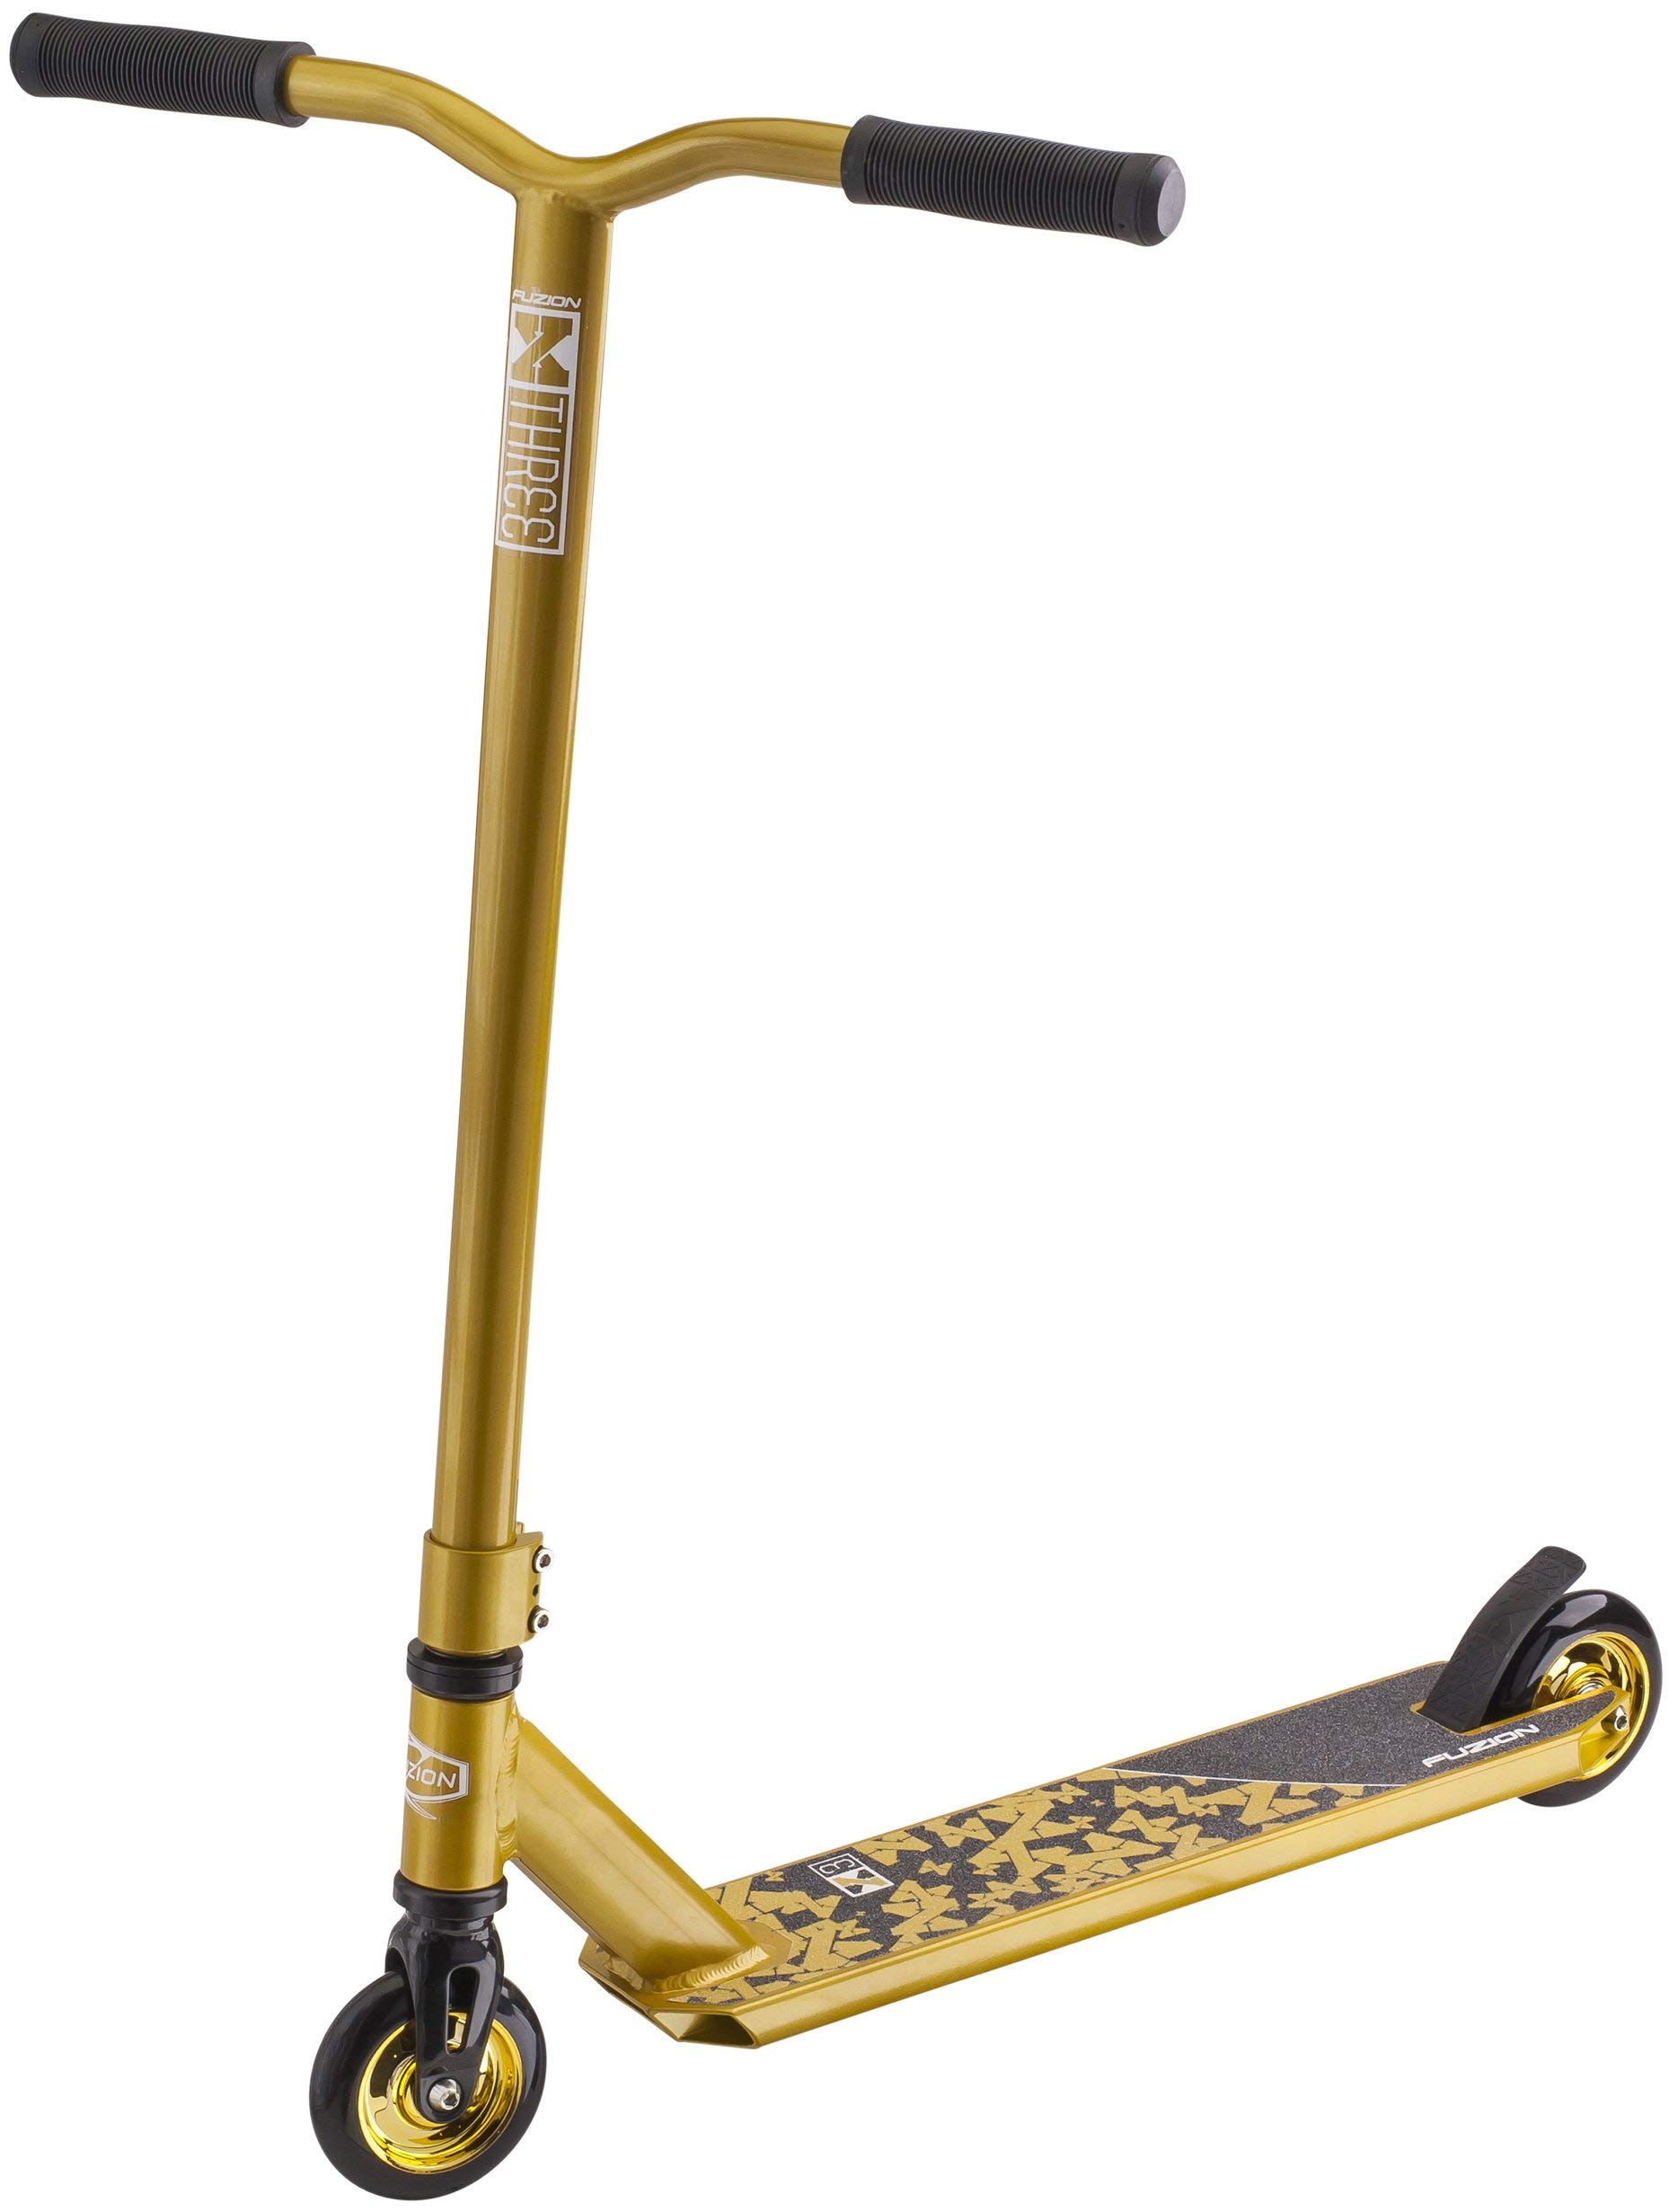 Fuzion X-3 Pro Scooter (2018 Gold) (Renewed) by Fuzion